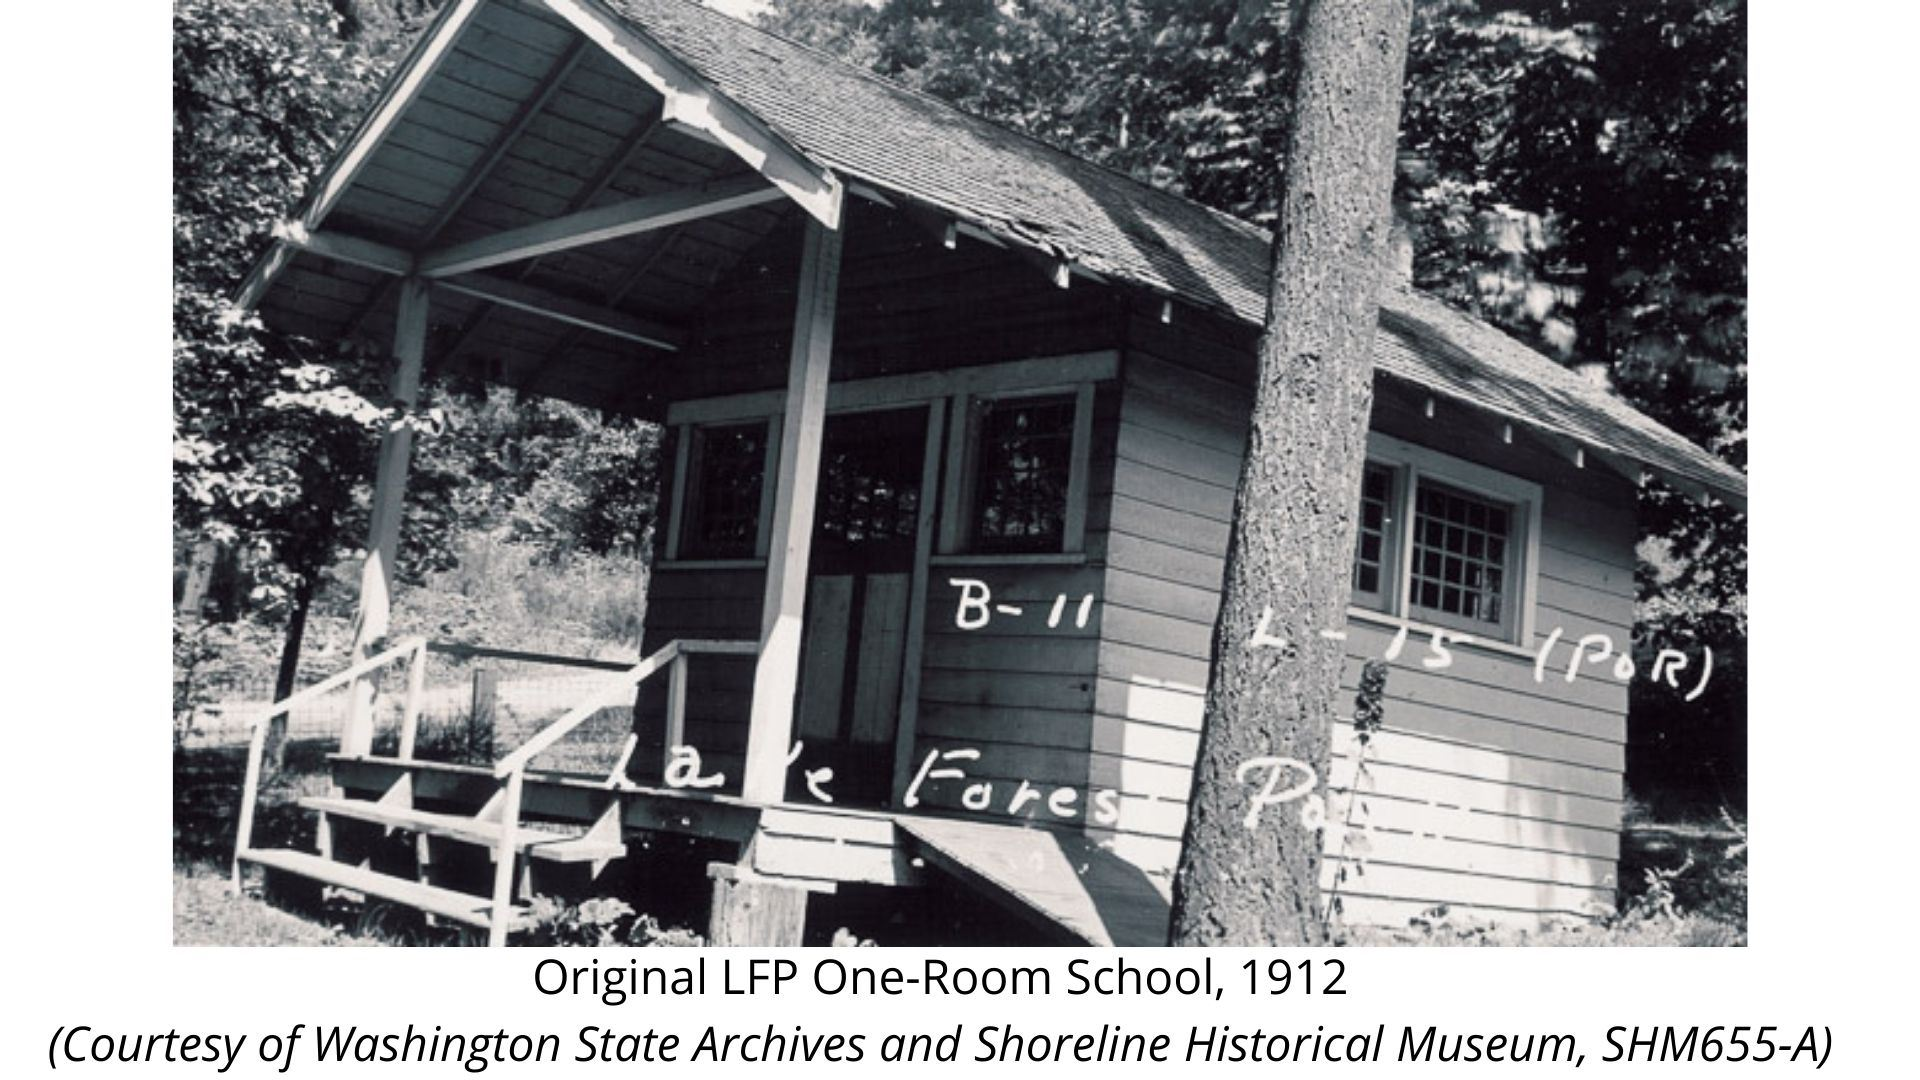 Original One-Room School, 1912